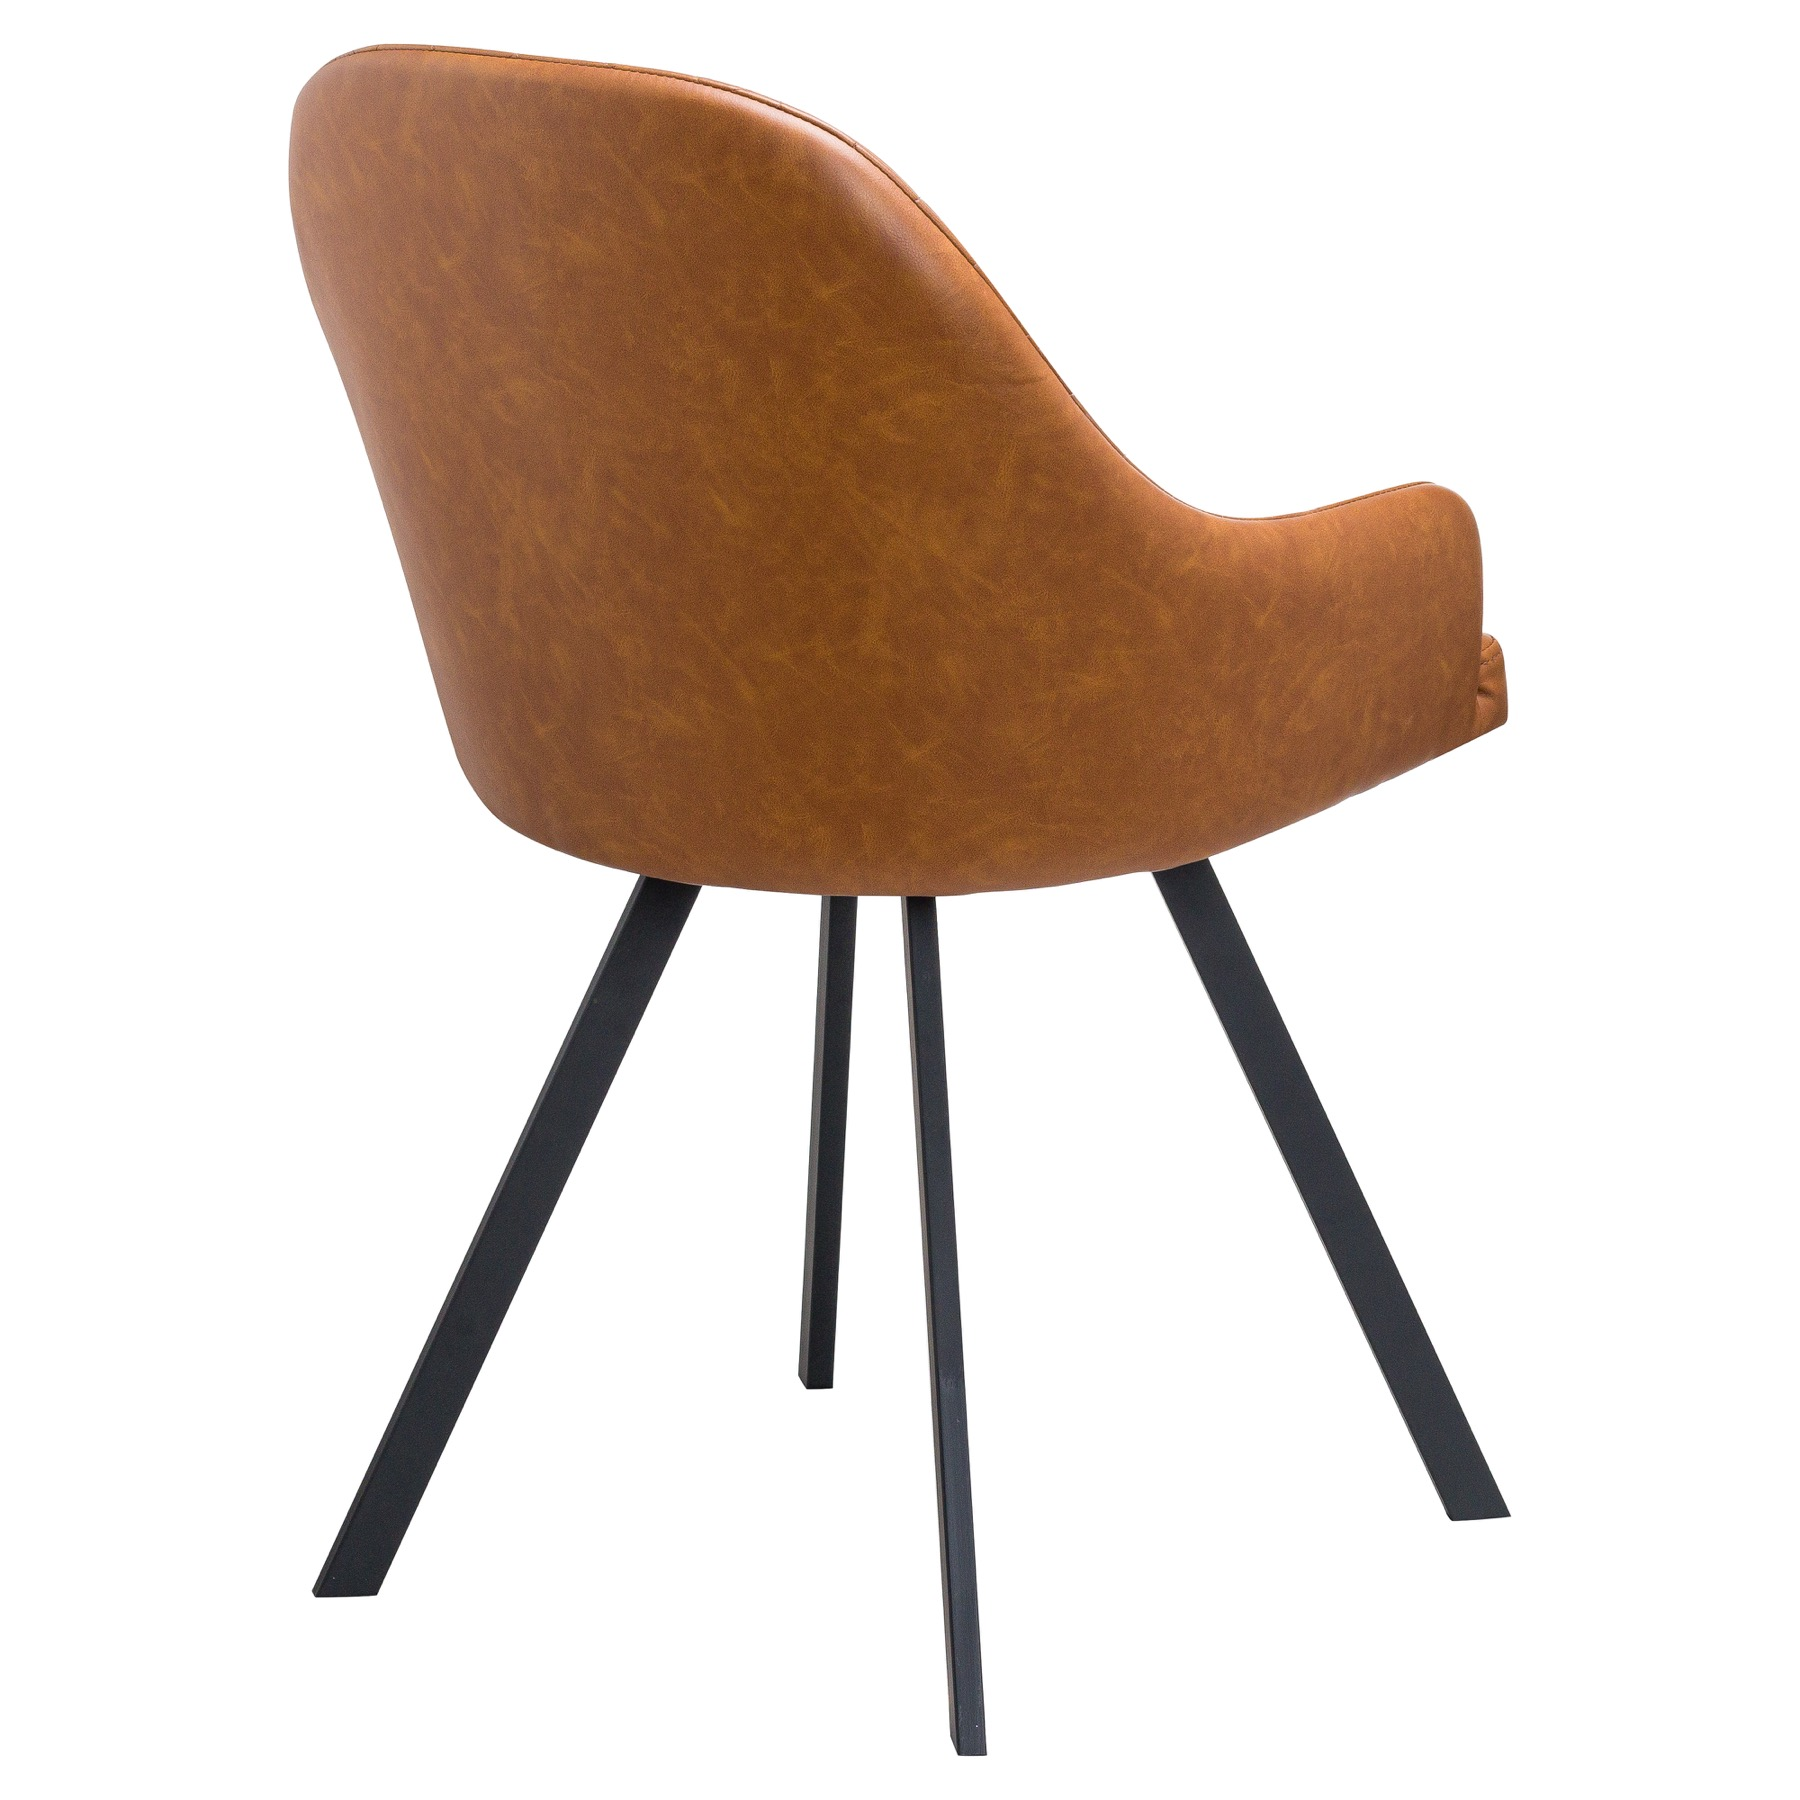 Stockholme Chequered Tan Dining Chair - Image 3